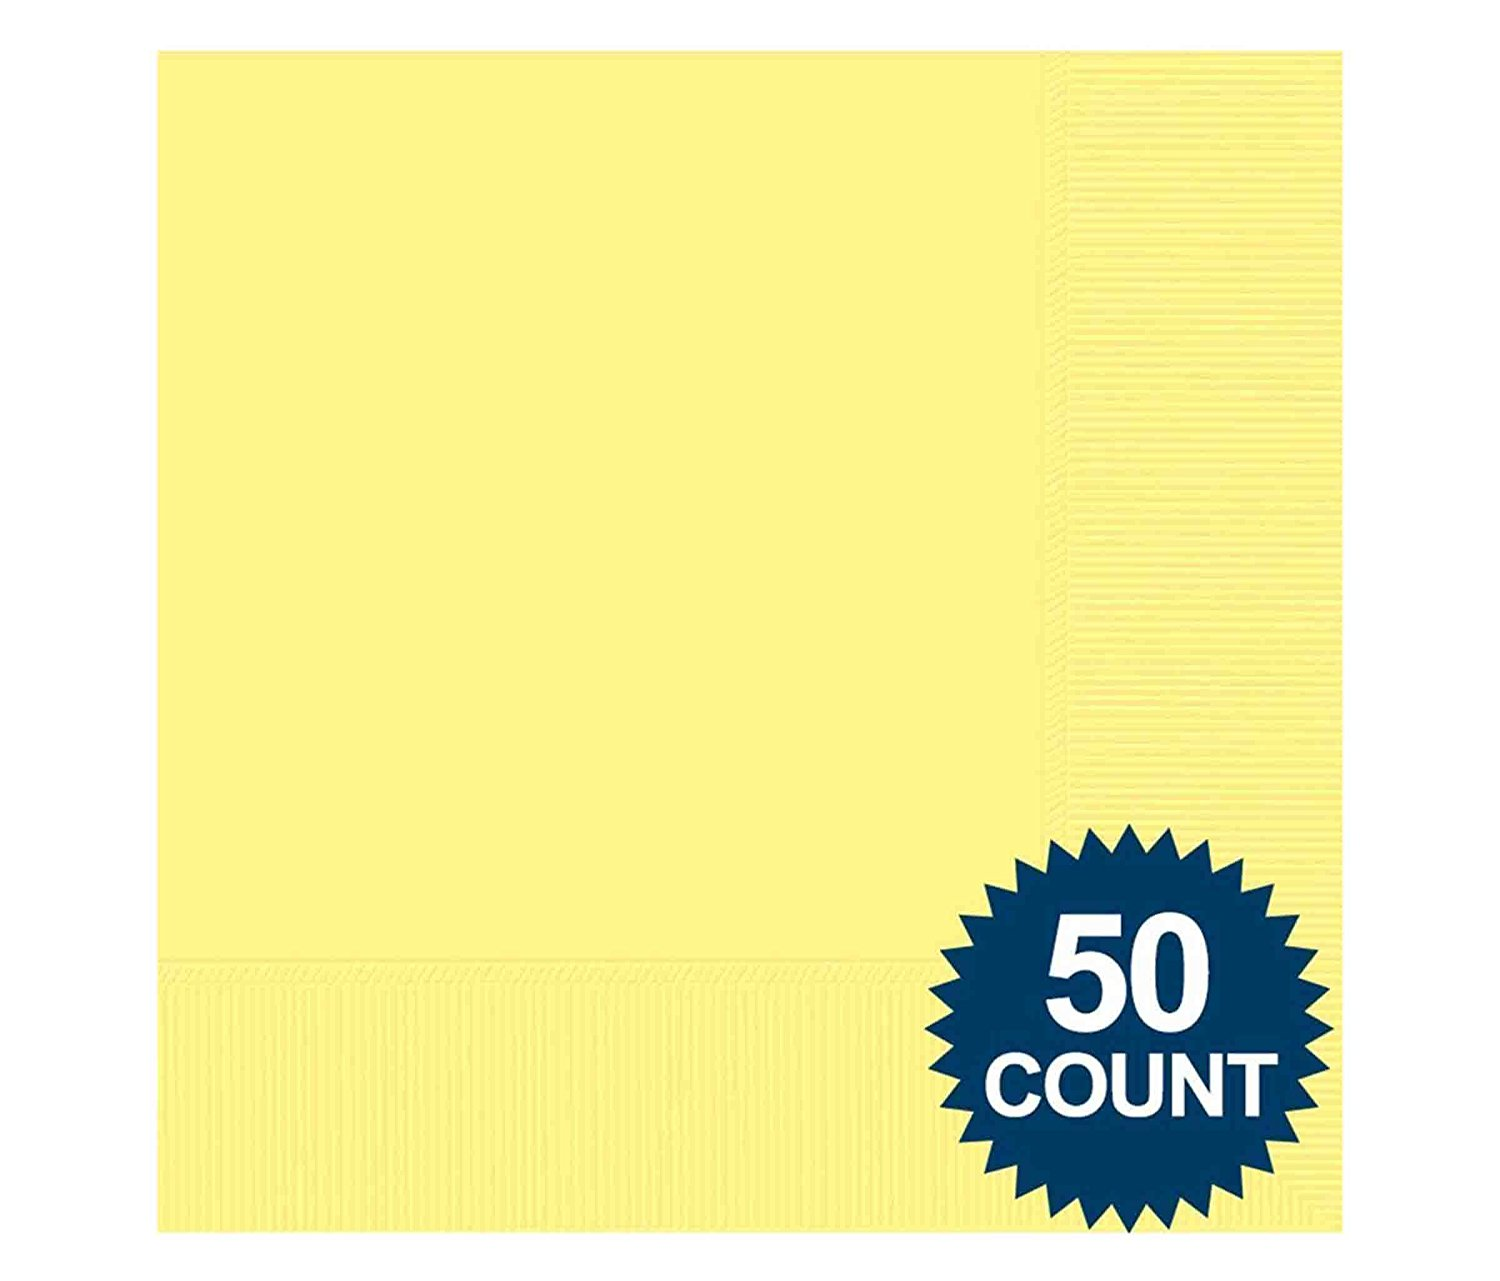 Mozlly Multipack - Amscan Light Yellow 2 Ply Luncheon Napkins - 6.25 x 6.25 inch - Solid Color - Easter Theme - Party Tableware (50pc Set) (Pack of 6)